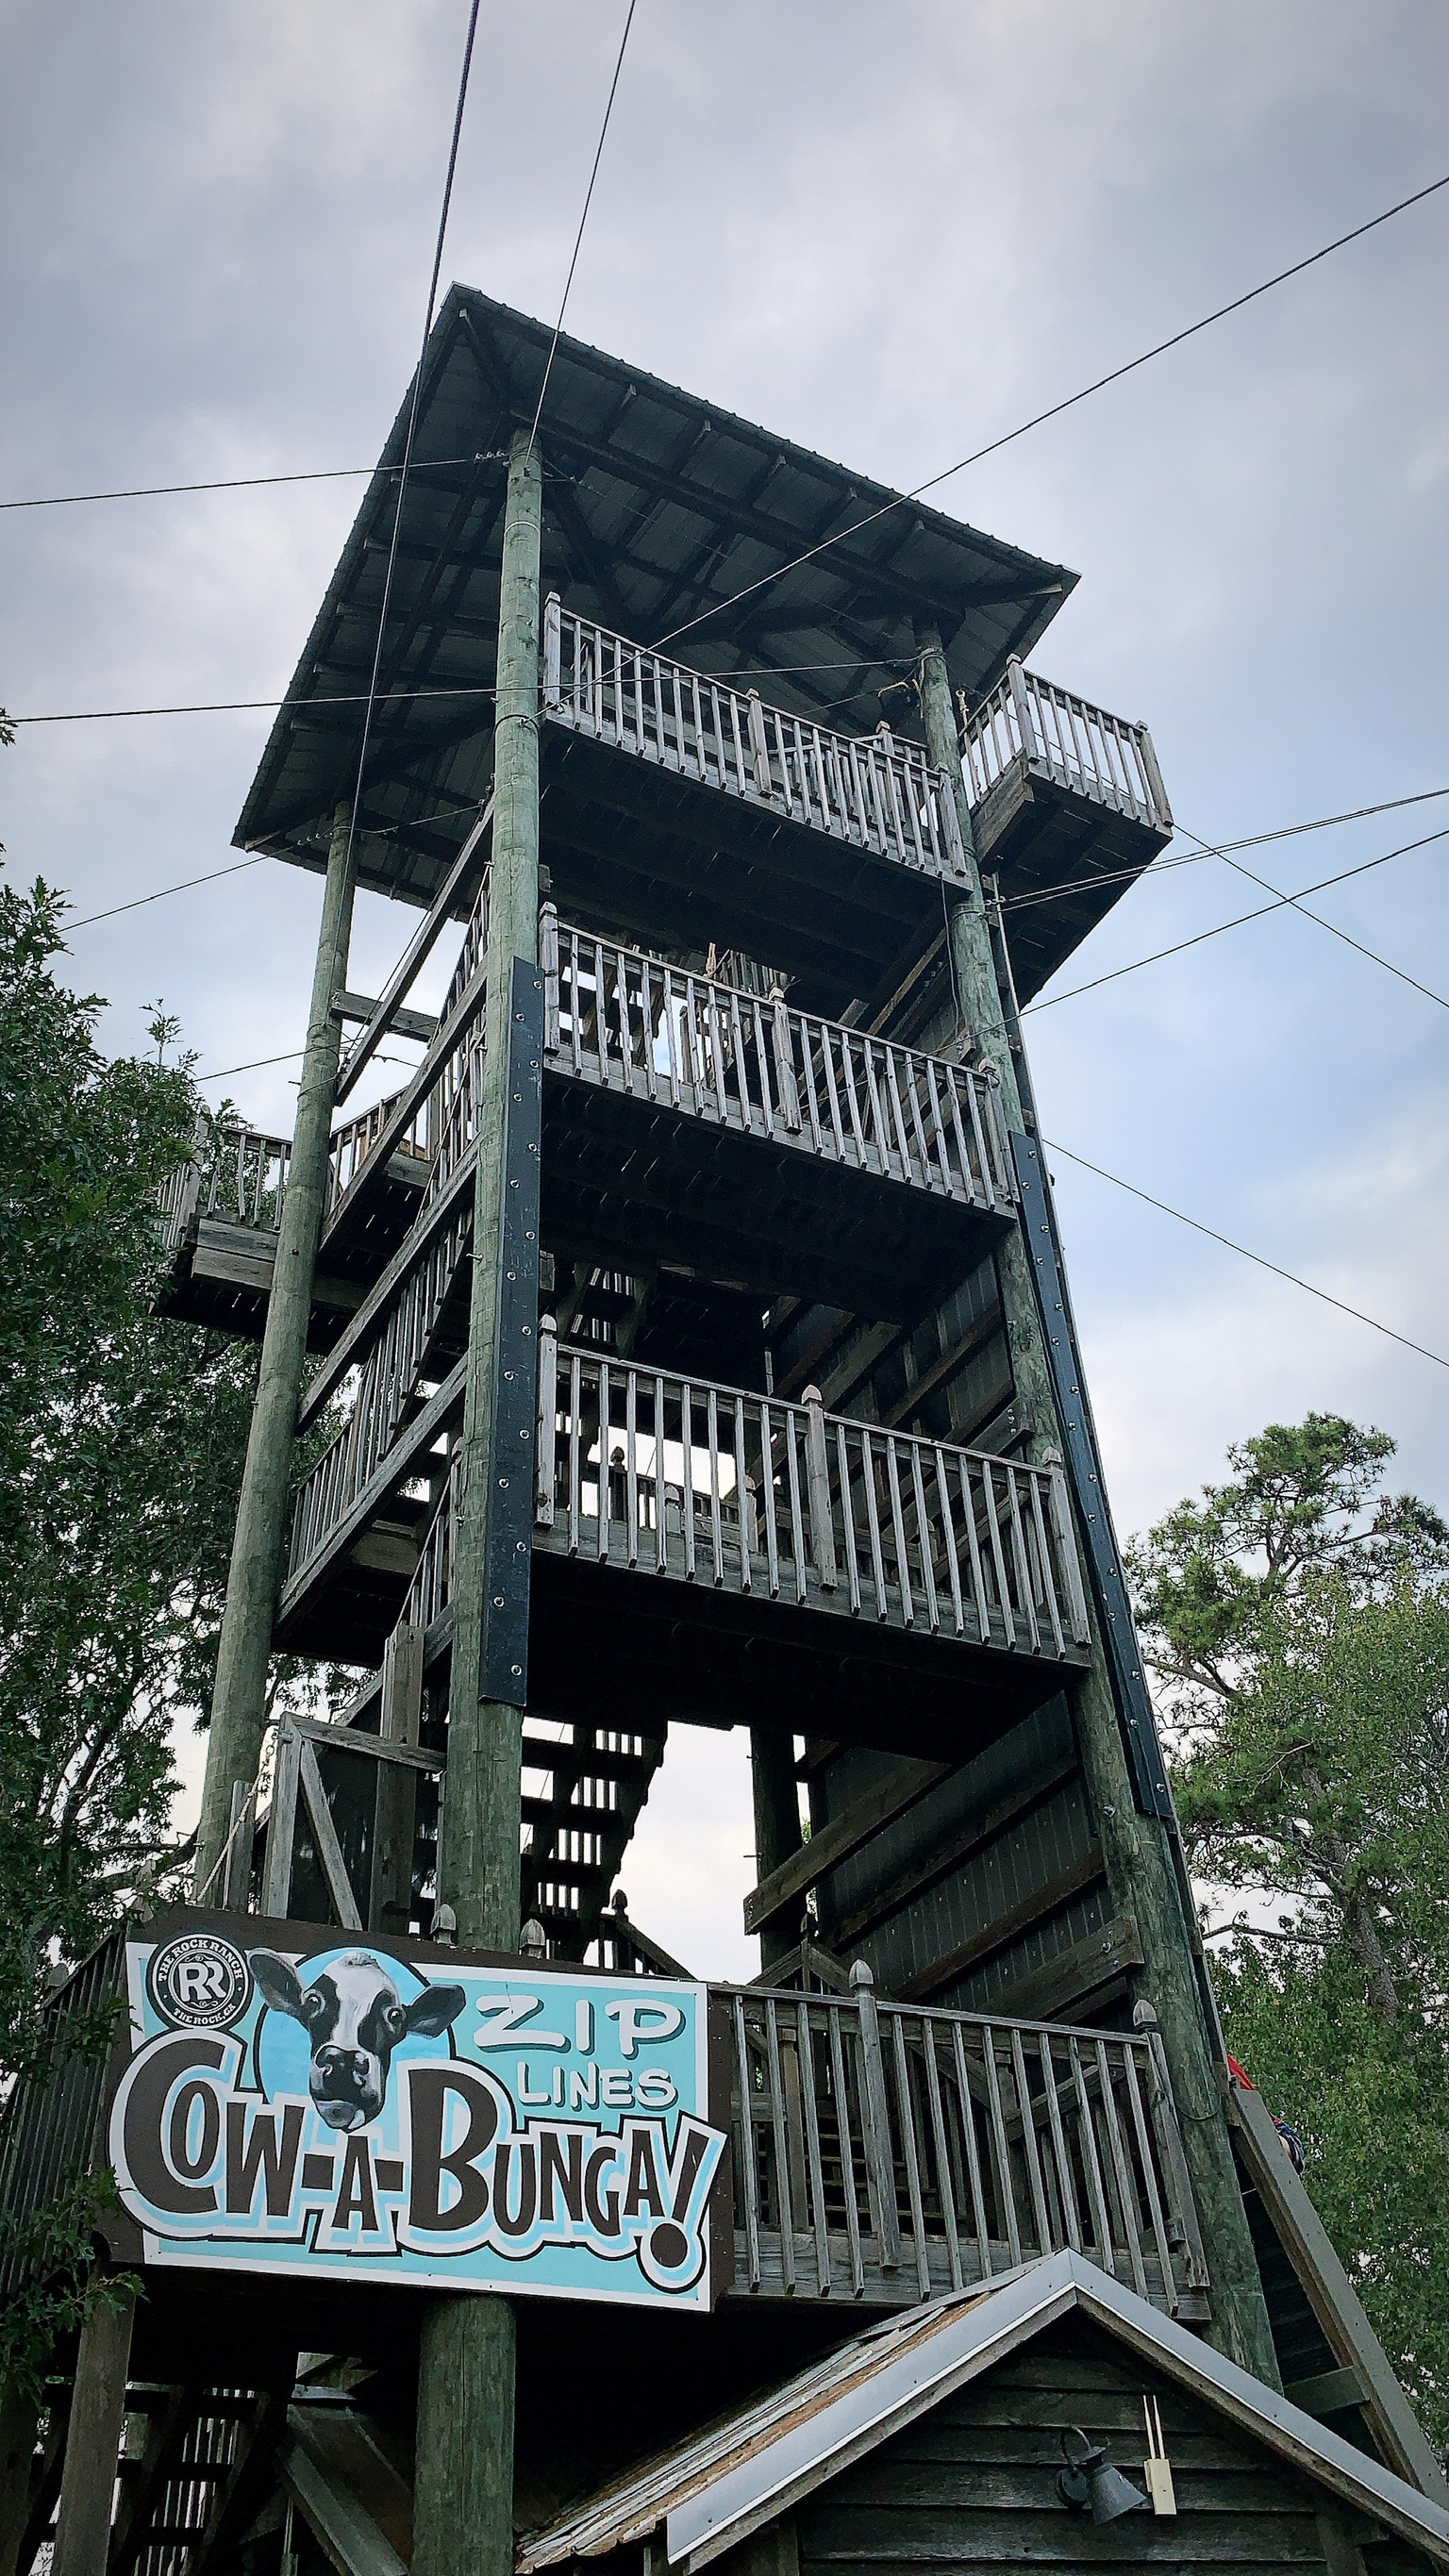 Cow-a-Bunga! Zip Lines tower at The Rock Ranch.